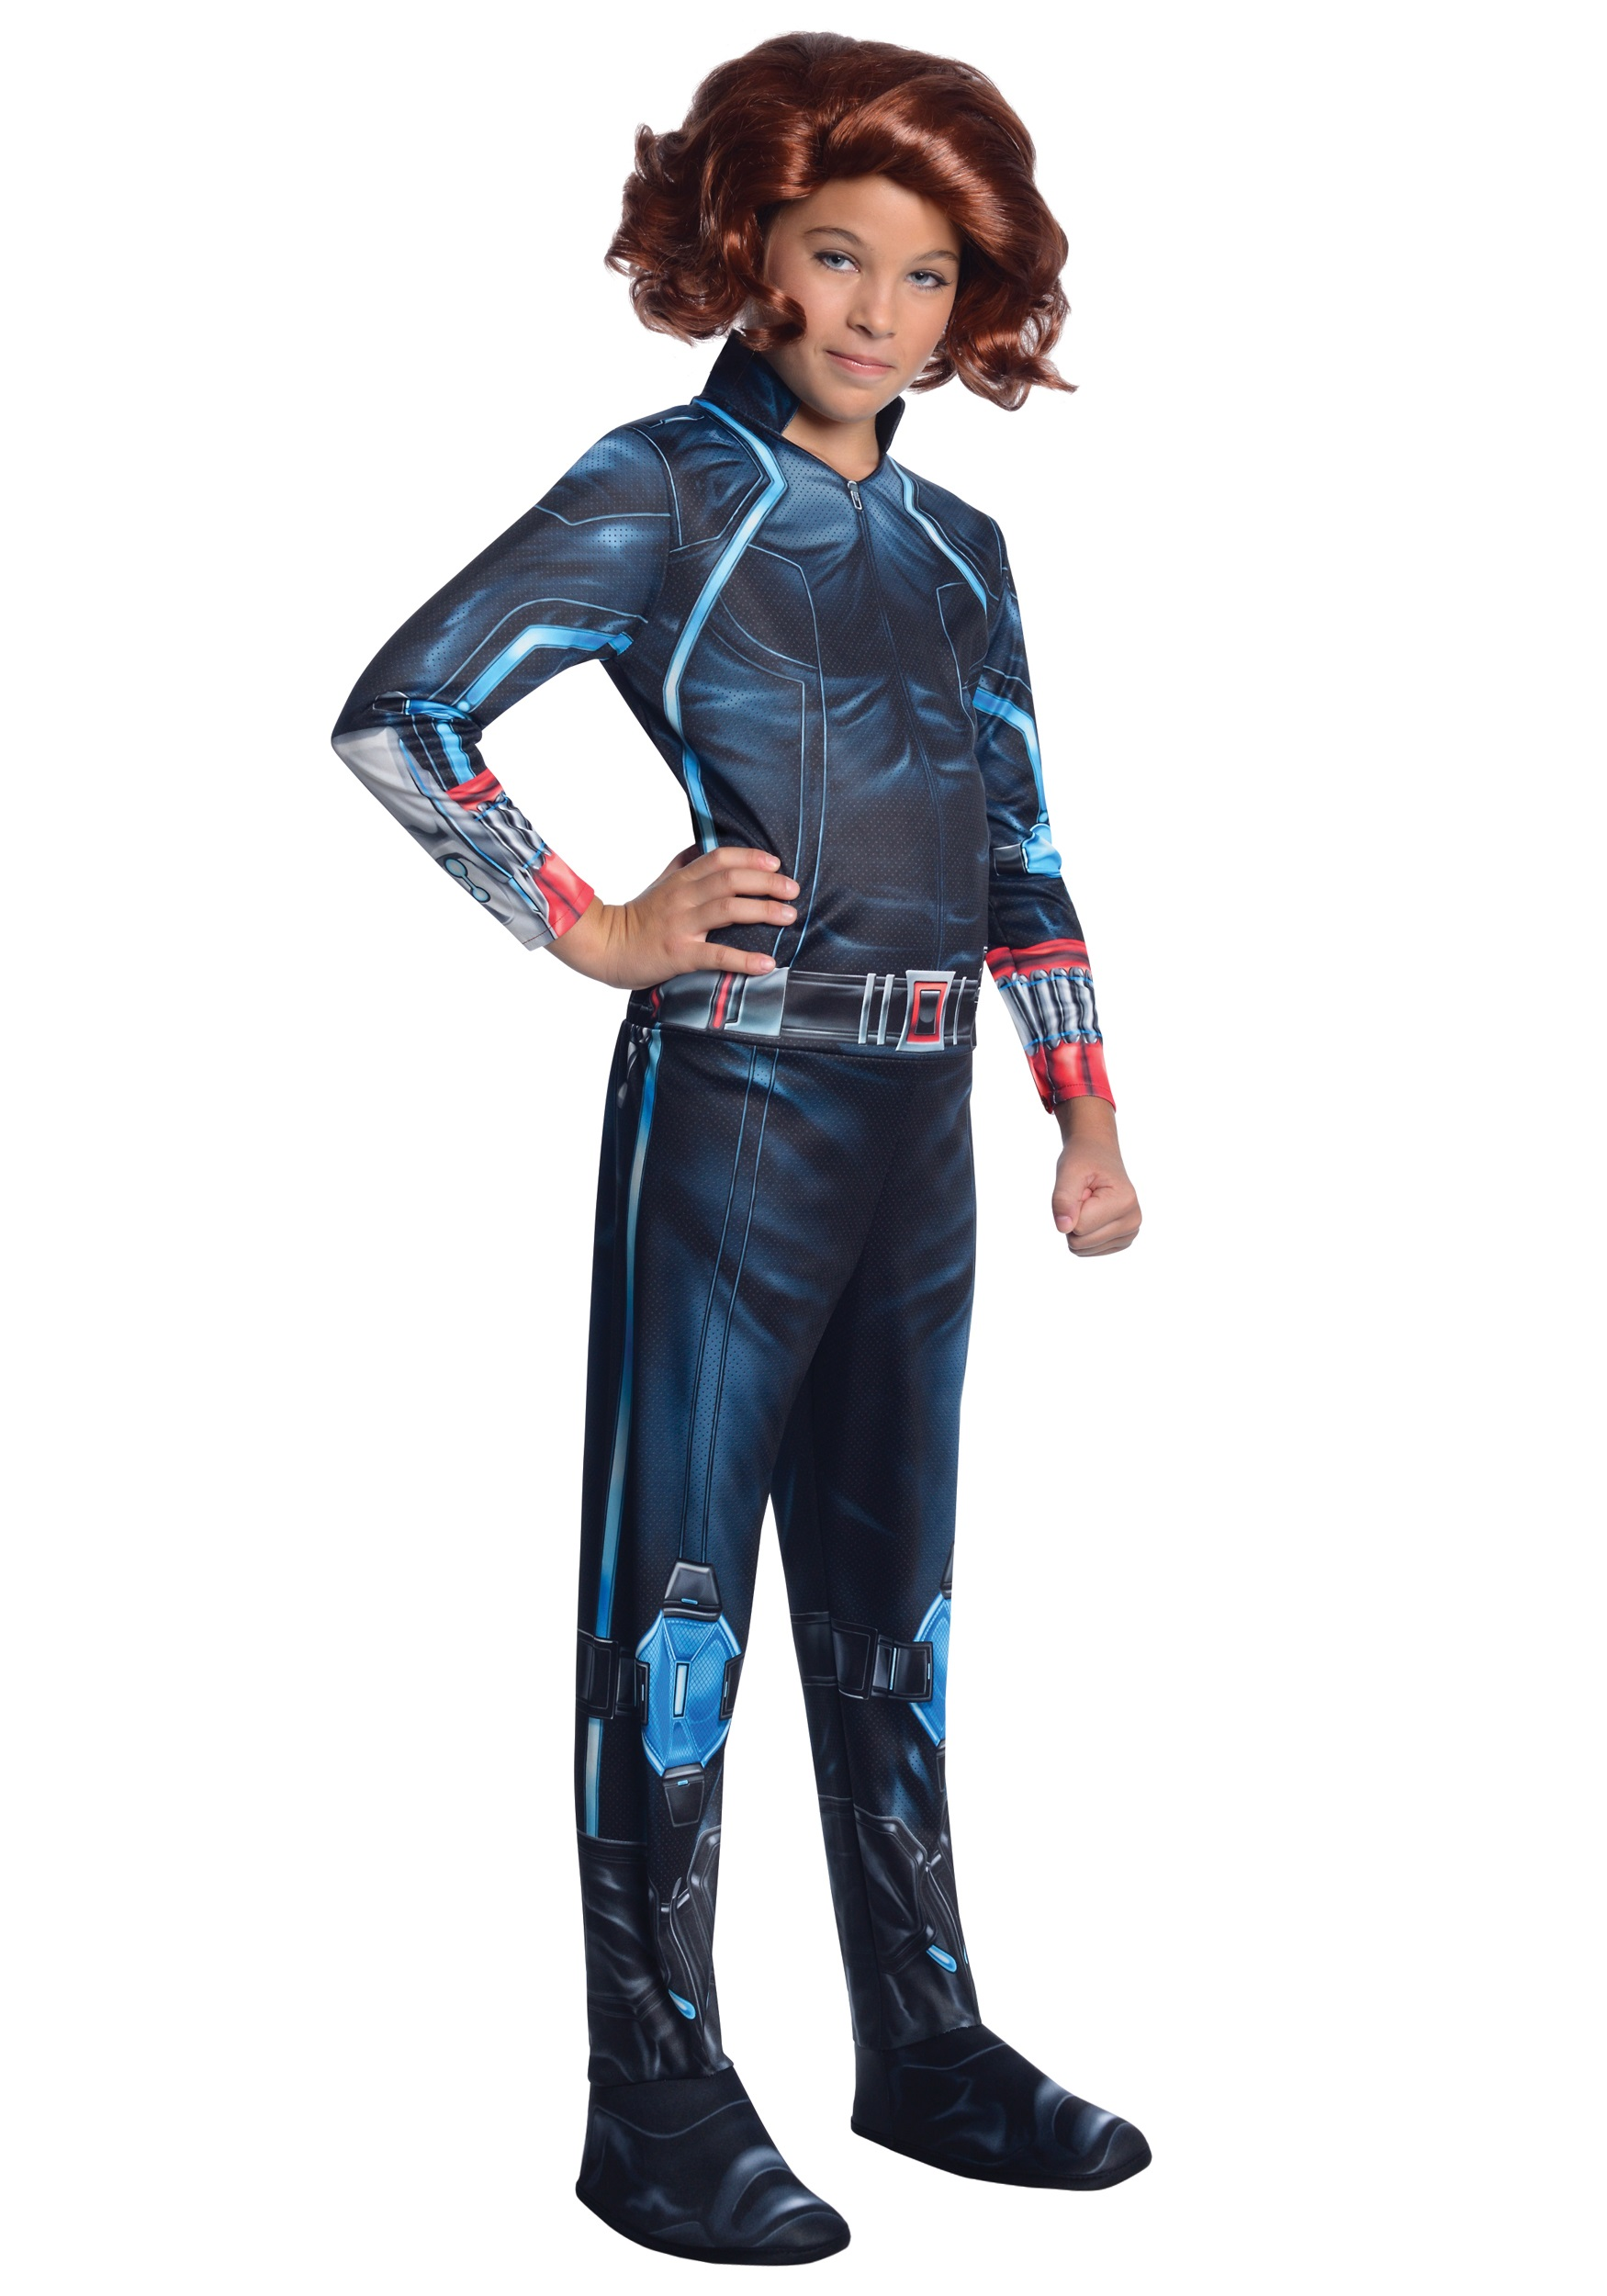 Black Widow Avengers Natasha Romanoff Marvel Superhero Halloween Child Costume